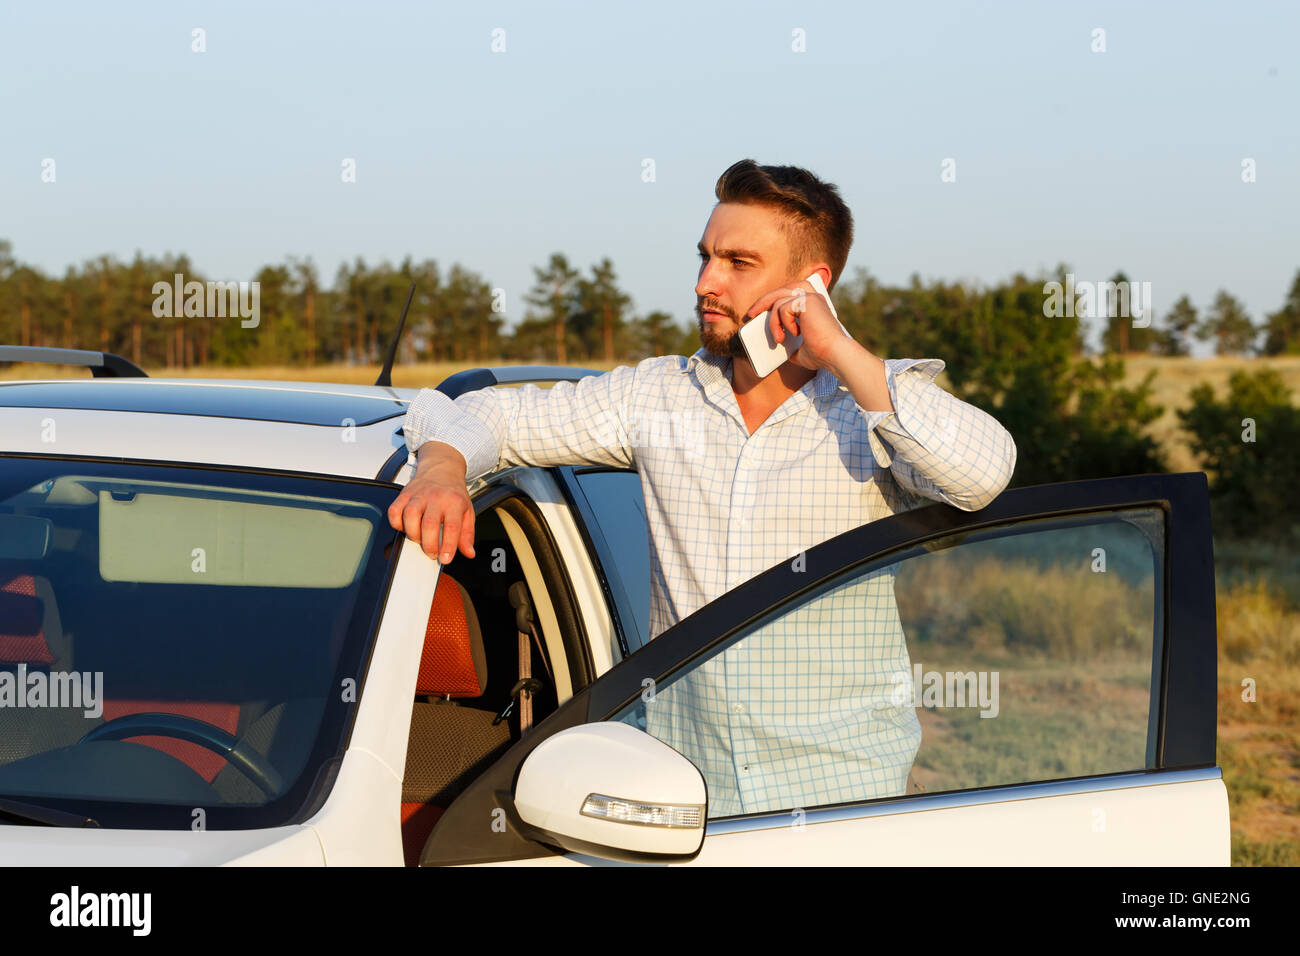 Young handsome man opened the door of his car. Man speaks by phone. Always connected. - Stock Image